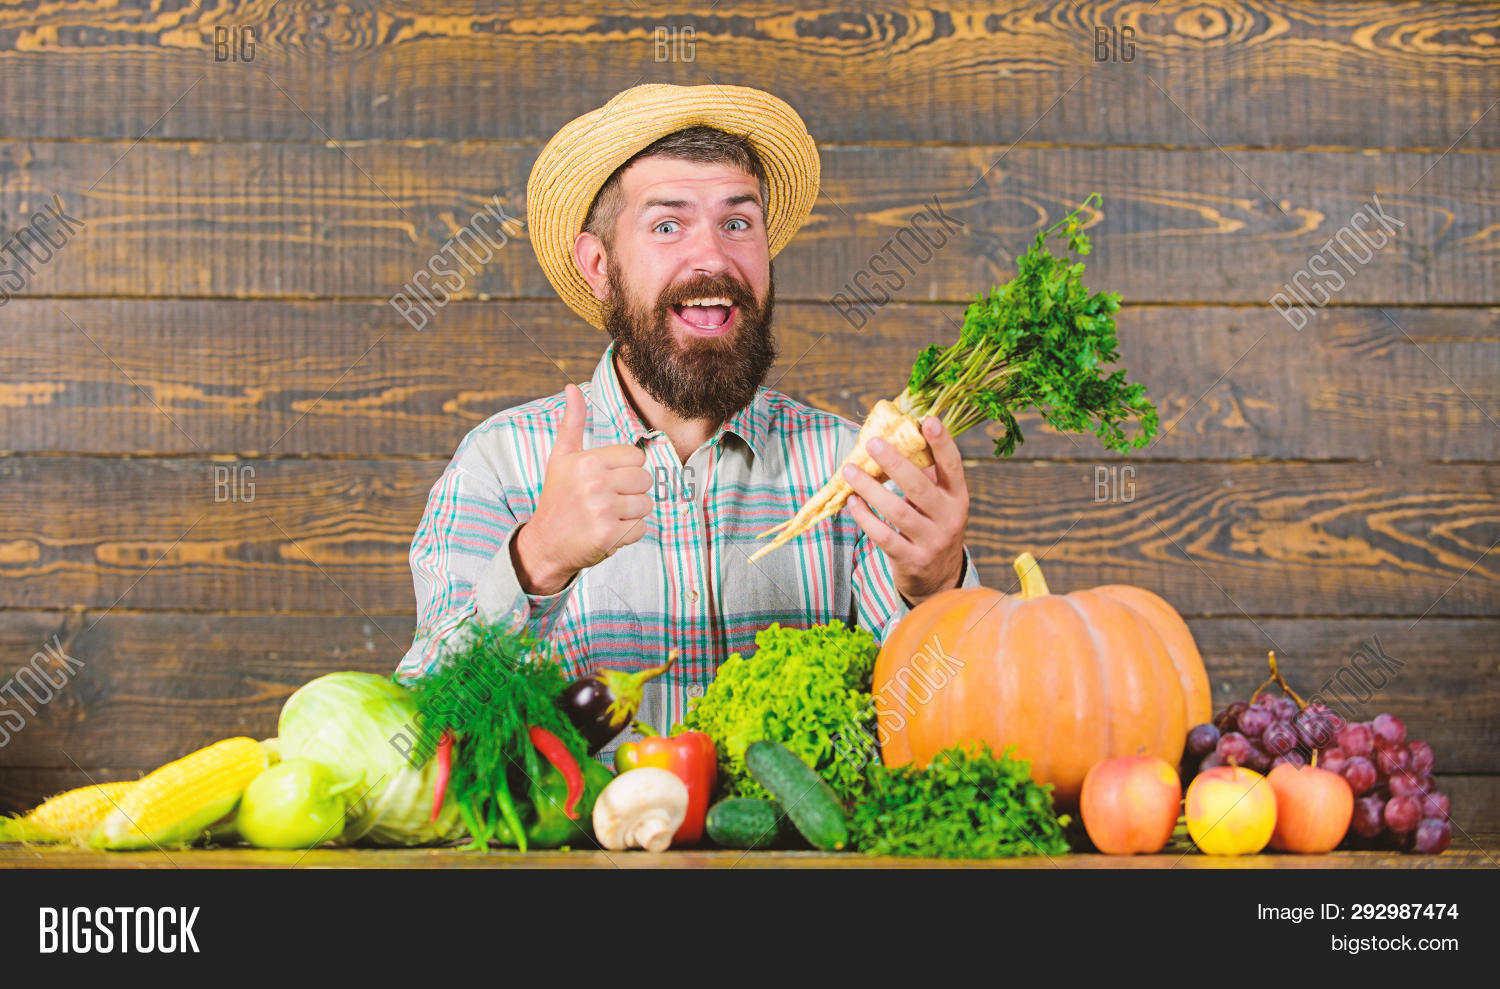 appearance,autumn,background,beard,bearded,cheerful,corn,crop,cucumber,diet,dieting,fall,farmer,food,fresh,gardener,greenery,grow,guy,handsome,harvest,hat,health,healthy,hipster,hold,homegrown,horseradish,maize,man,mustache,natural,organic,pepper,presenting,pumpkin,rustic,salad,straw,style,unshaven,vegetable,vegetarian,village,villager,vitamin,wooden